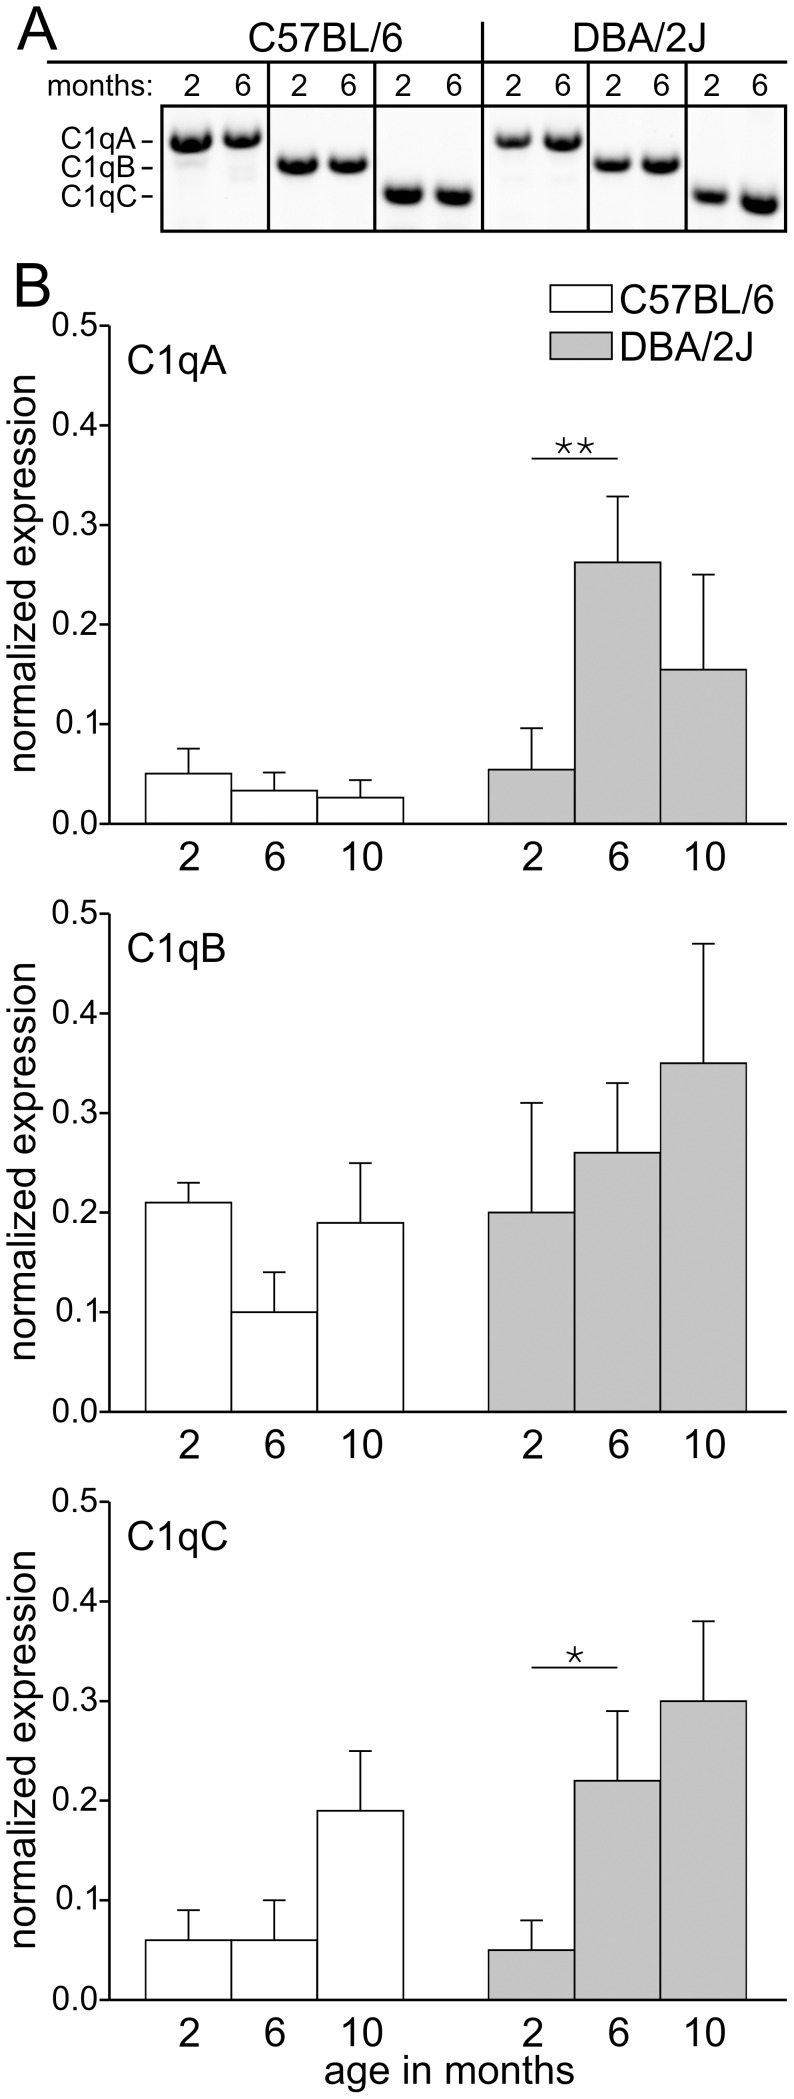 C1qA and C1qC gene expression is upregulated in photoreceptor cells of aging DBA/2J mice. (A) Agarose gels showing PCR fragments that represent the gene expression of C1qA, C1qB and C1qC in the retinae of 2 and 6 months old DBA/2J and C57BL/6 control mice. (B) The expression of C1qA, C1qB and C1qC in photoreceptor cells of 2, 6, and 10 months old DBA/2J mice and age-matched C57BL/6 control mice was compared with PCR. For each age, cDNA obtained from three animals was subjected to triplicate PCR amplifications (n = 9). Statistically significant differences are indicated by asterisks (* p